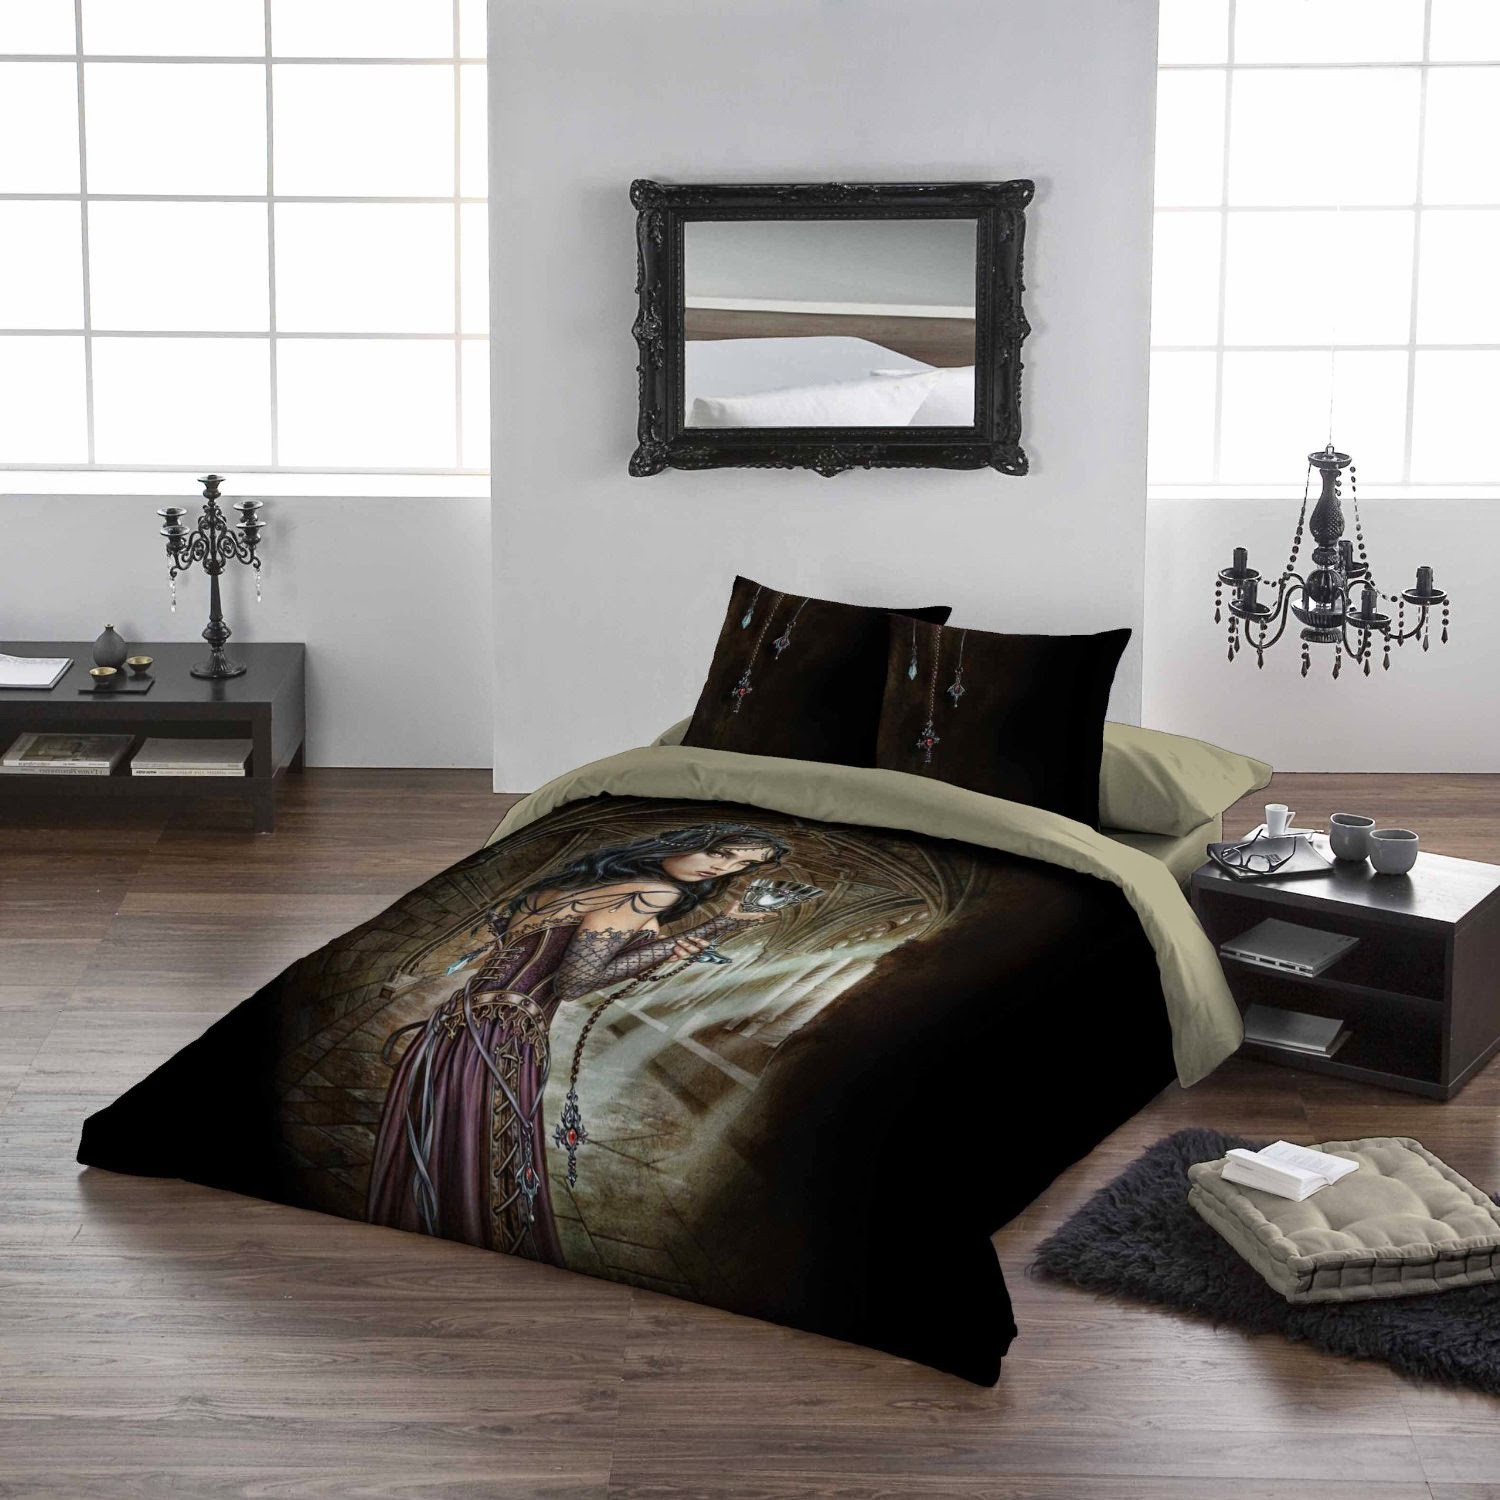 Teenage Girls Bathroom Ideas Bedroom Decor Ideas And Designs Top Ten Gothic Bedding